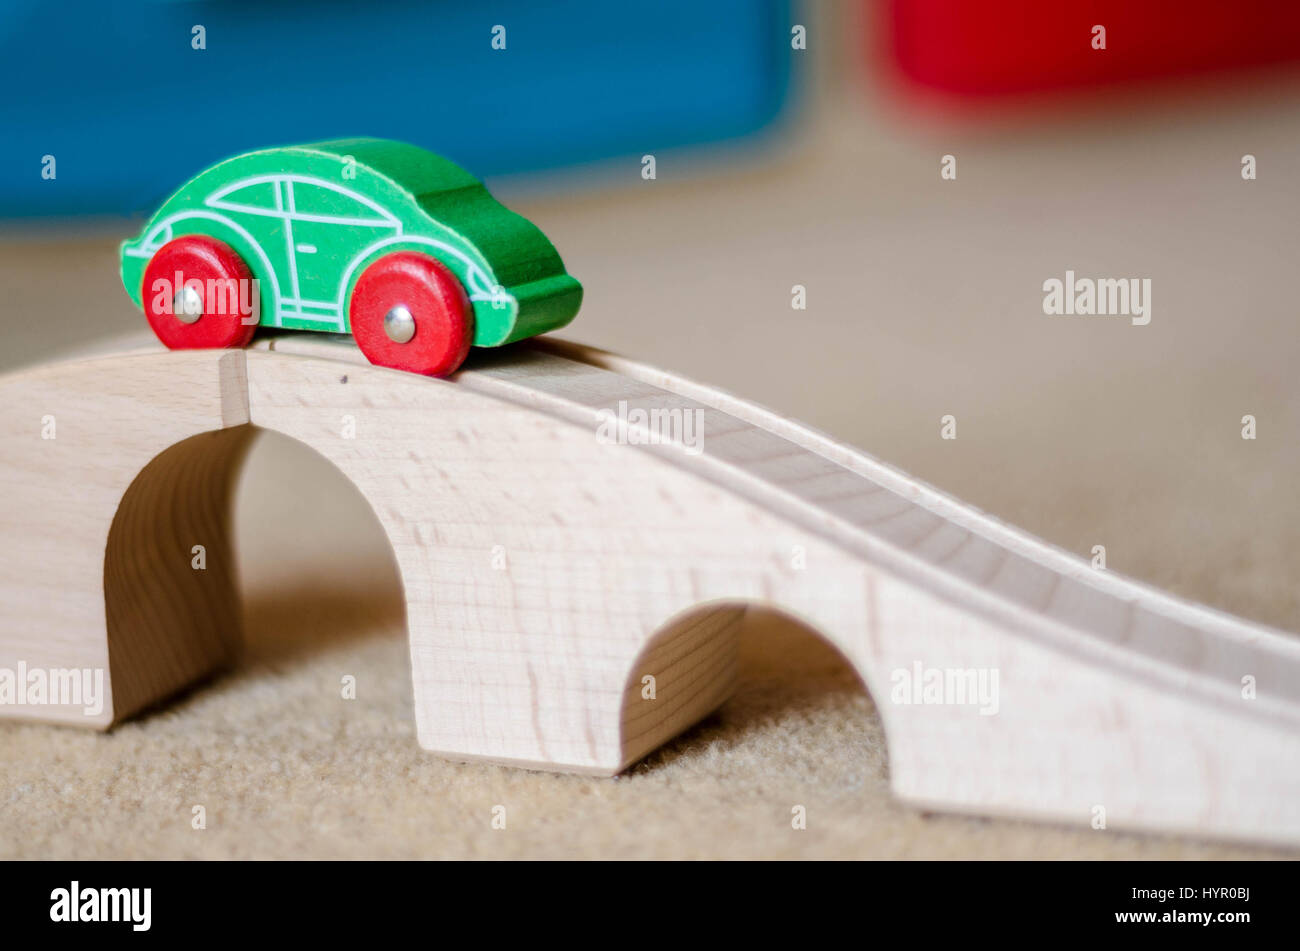 A toy wooden car on top of a toy wooden bridge. The car runs a long a track with grooves to guide it's wheels. - Stock Image